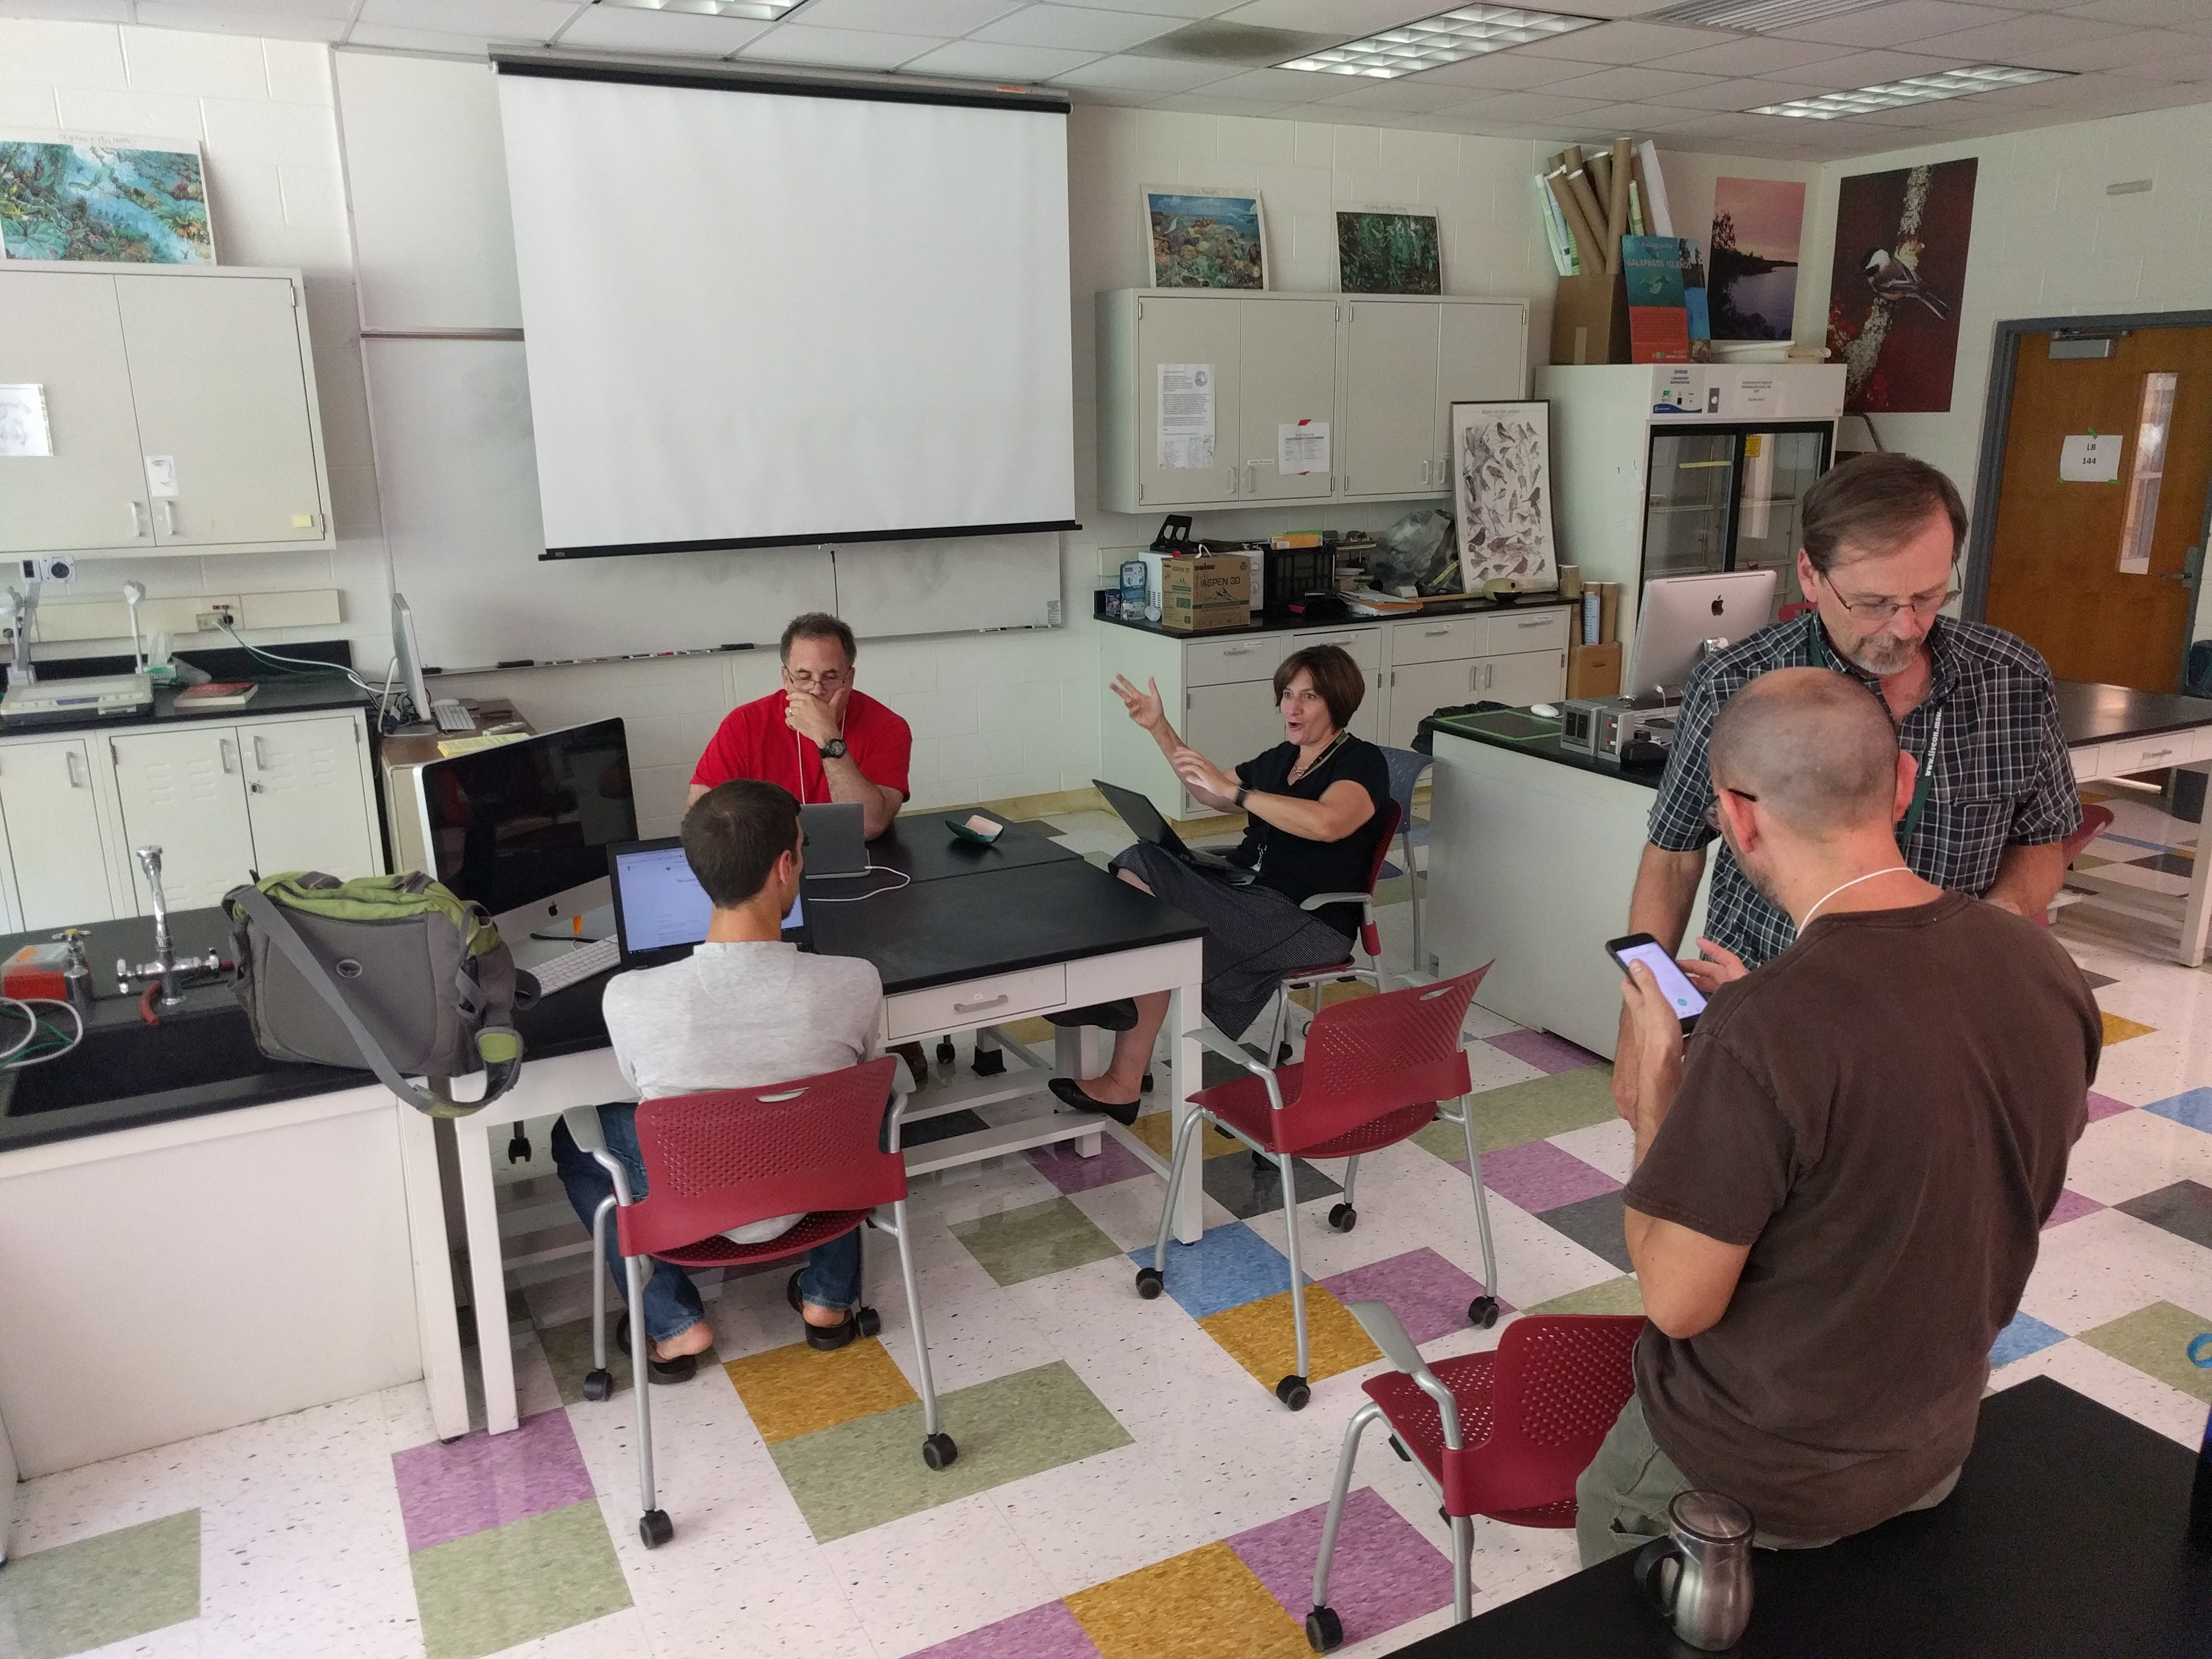 group working in classroom